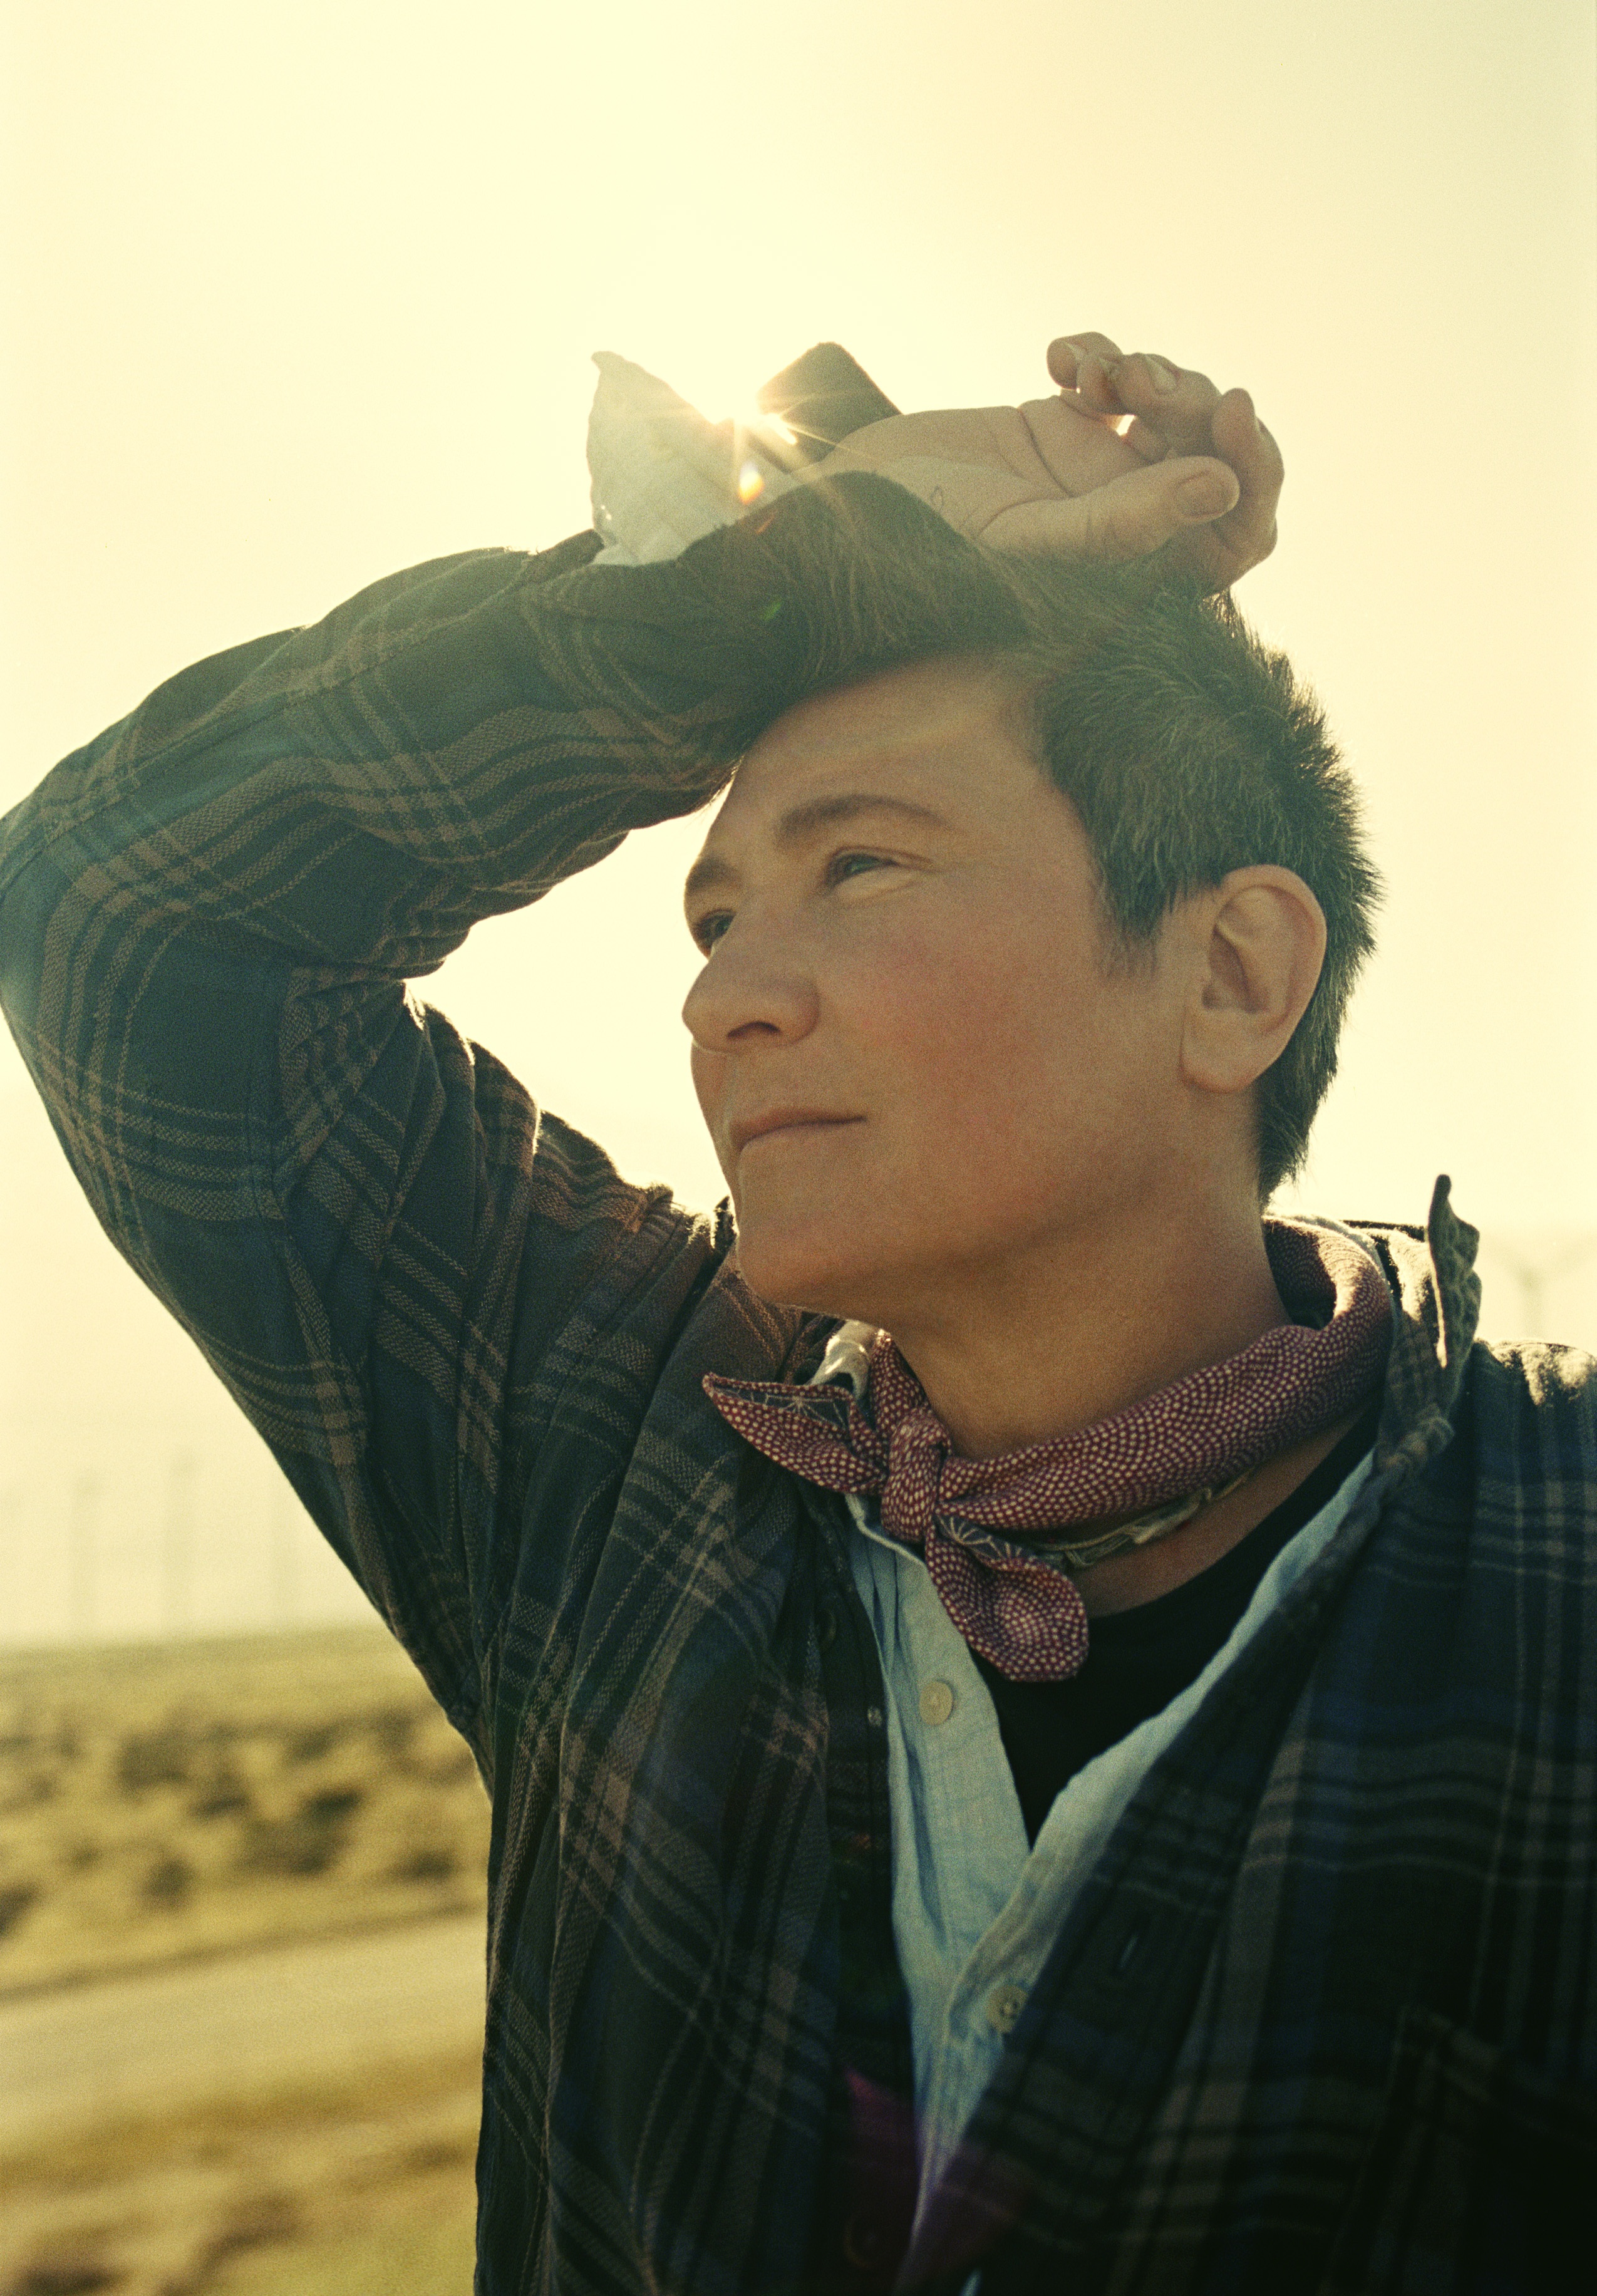 k.d. lang embarks on 25th anniversary tour of 'Ingenue' album